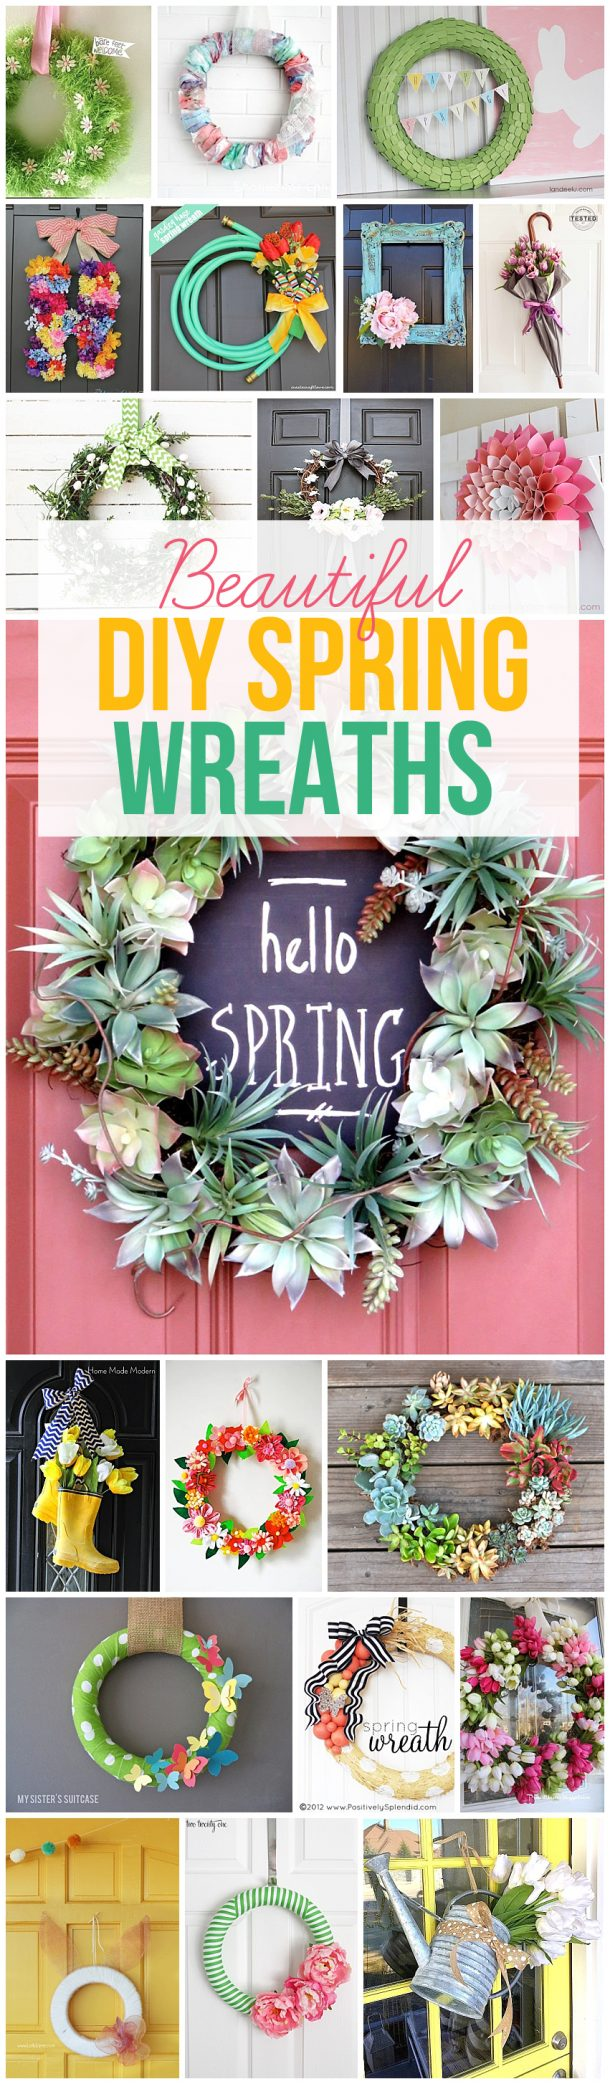 Get your craft on and make some one of these beautiful DIY spring wreaths this year!